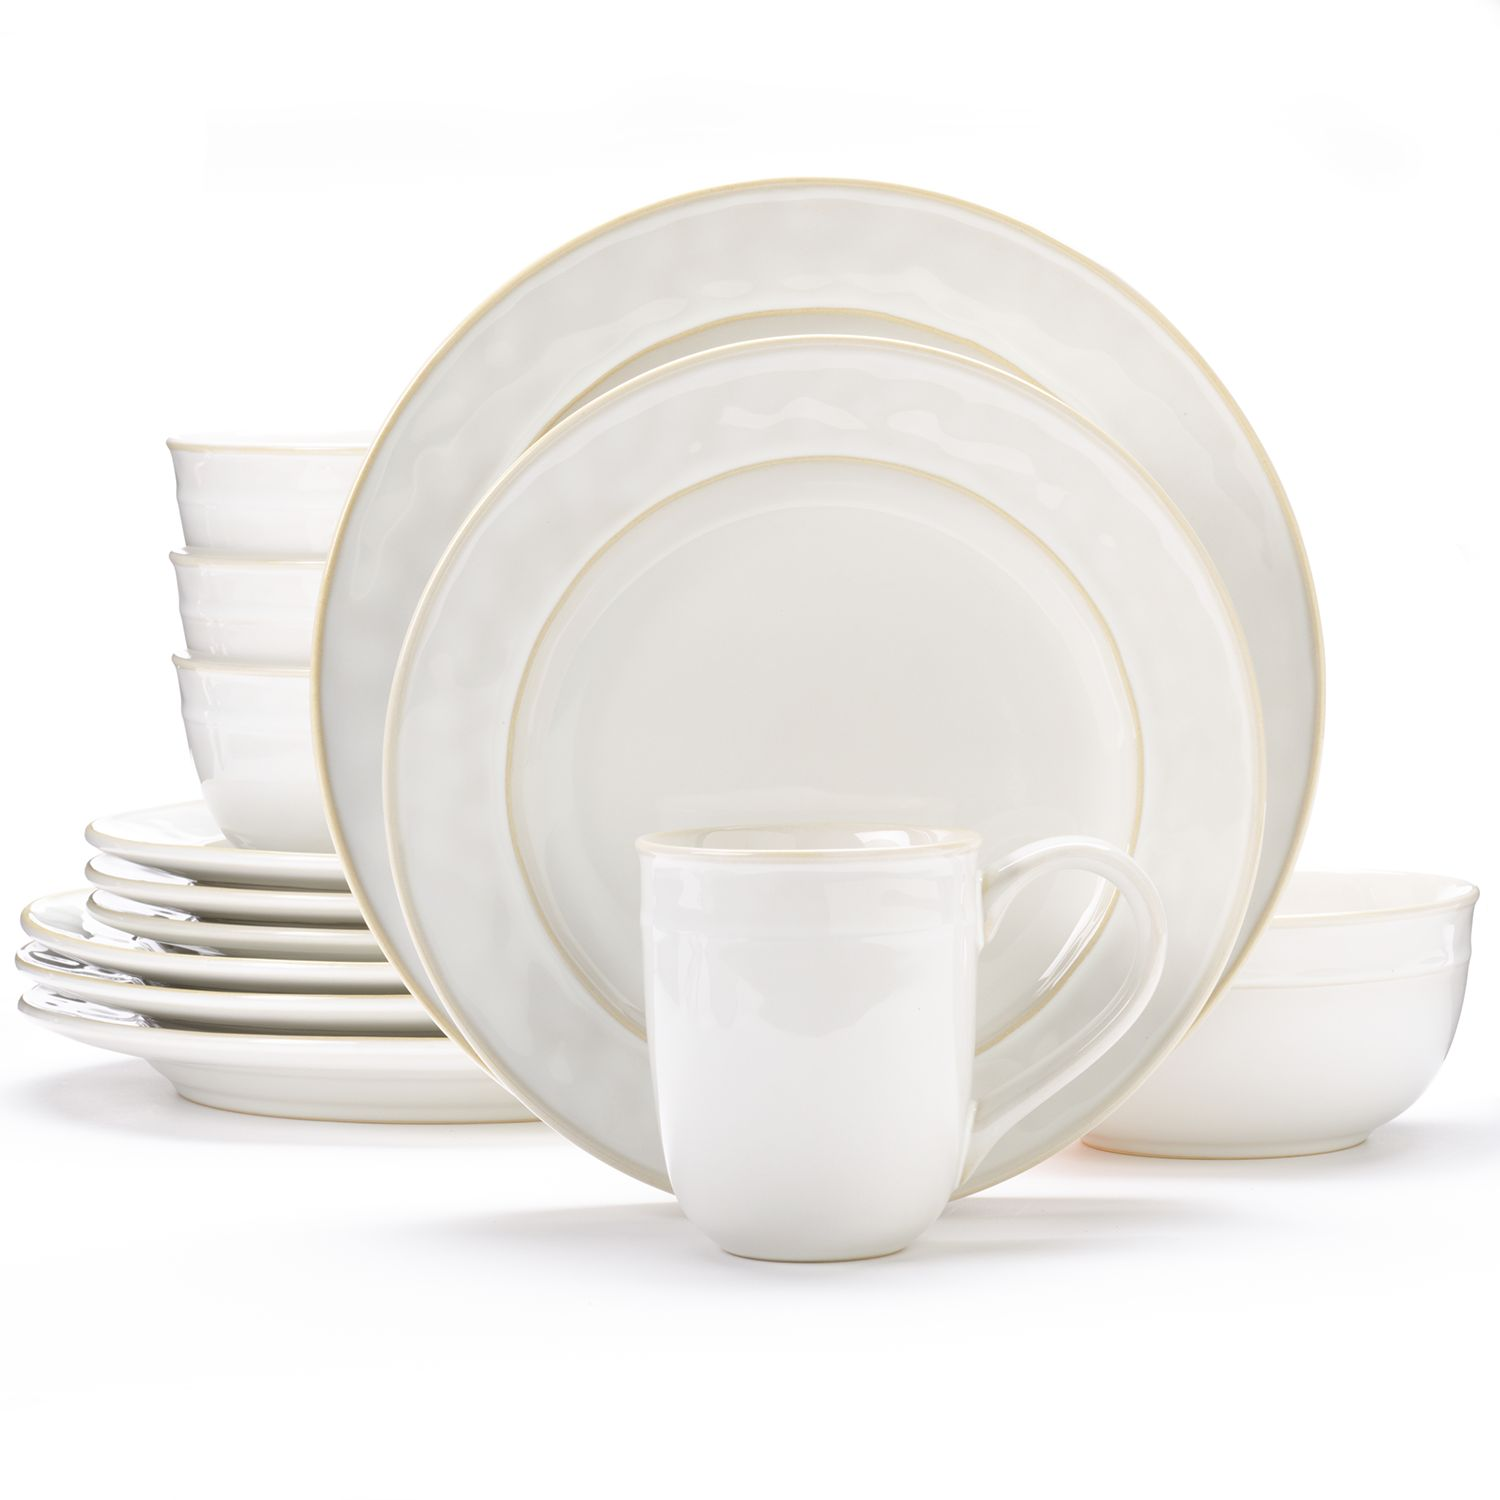 Dinnerware Set  sc 1 st  Kohlu0027s & Food Network Dinnerware u0026 Serveware Kitchen u0026 Dining | Kohlu0027s